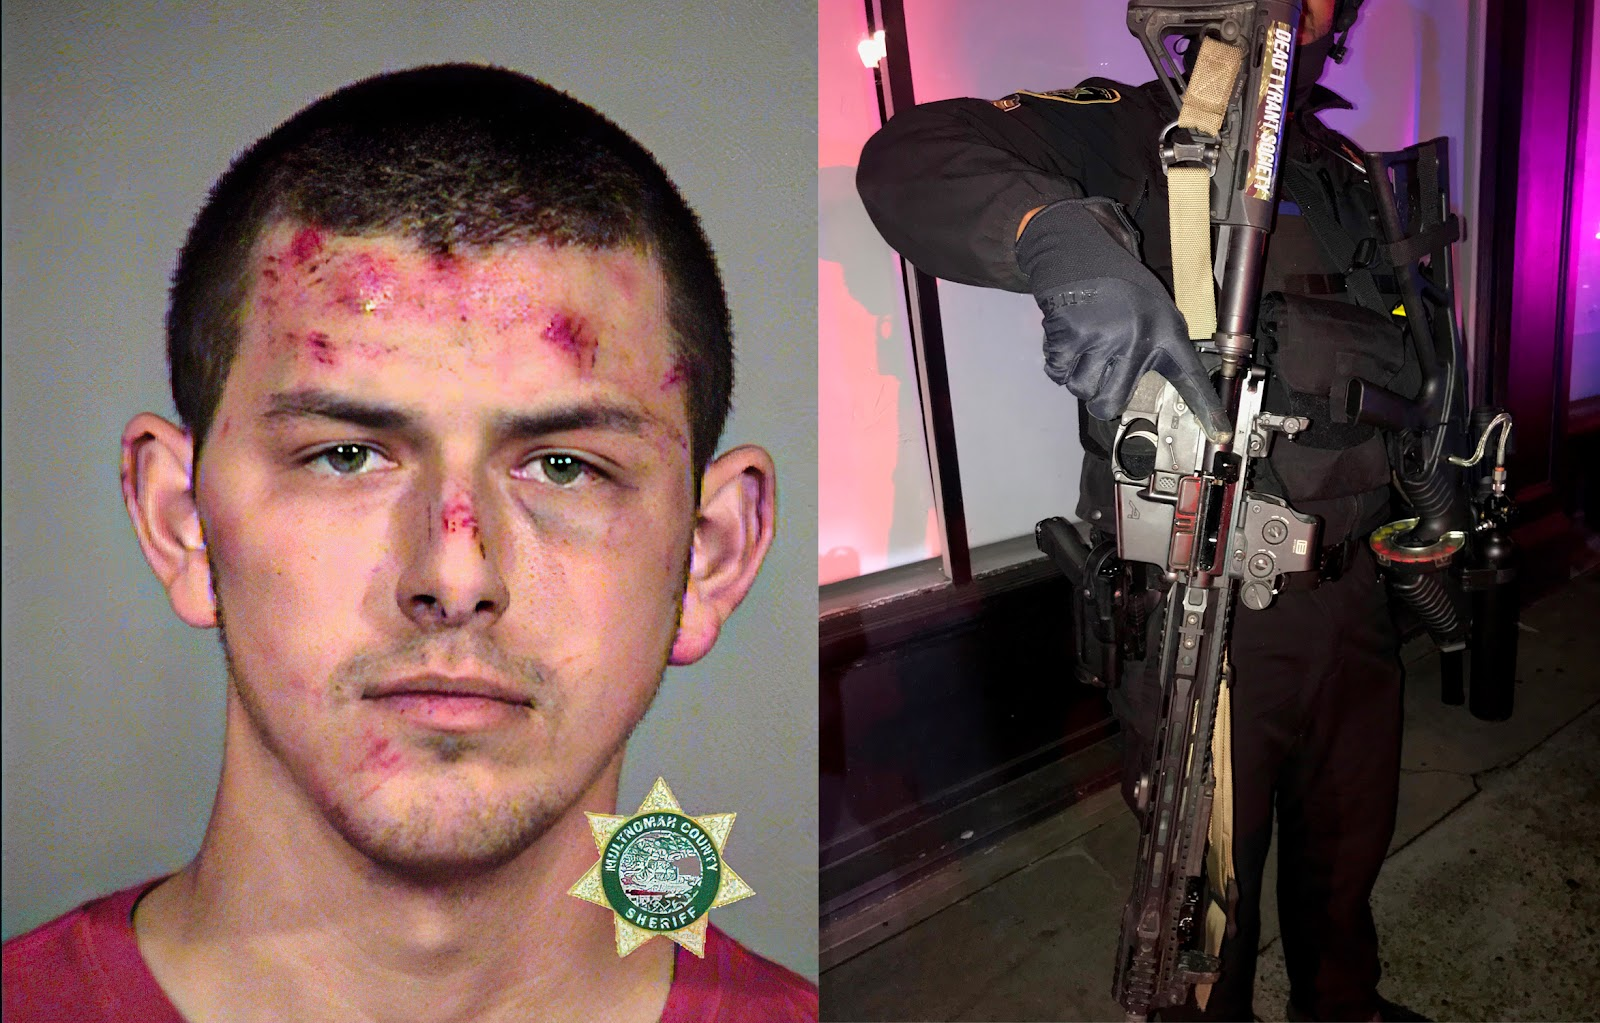 William Kahl Beecher was carrying a loaded rifle at the riot. Photo: MCSO